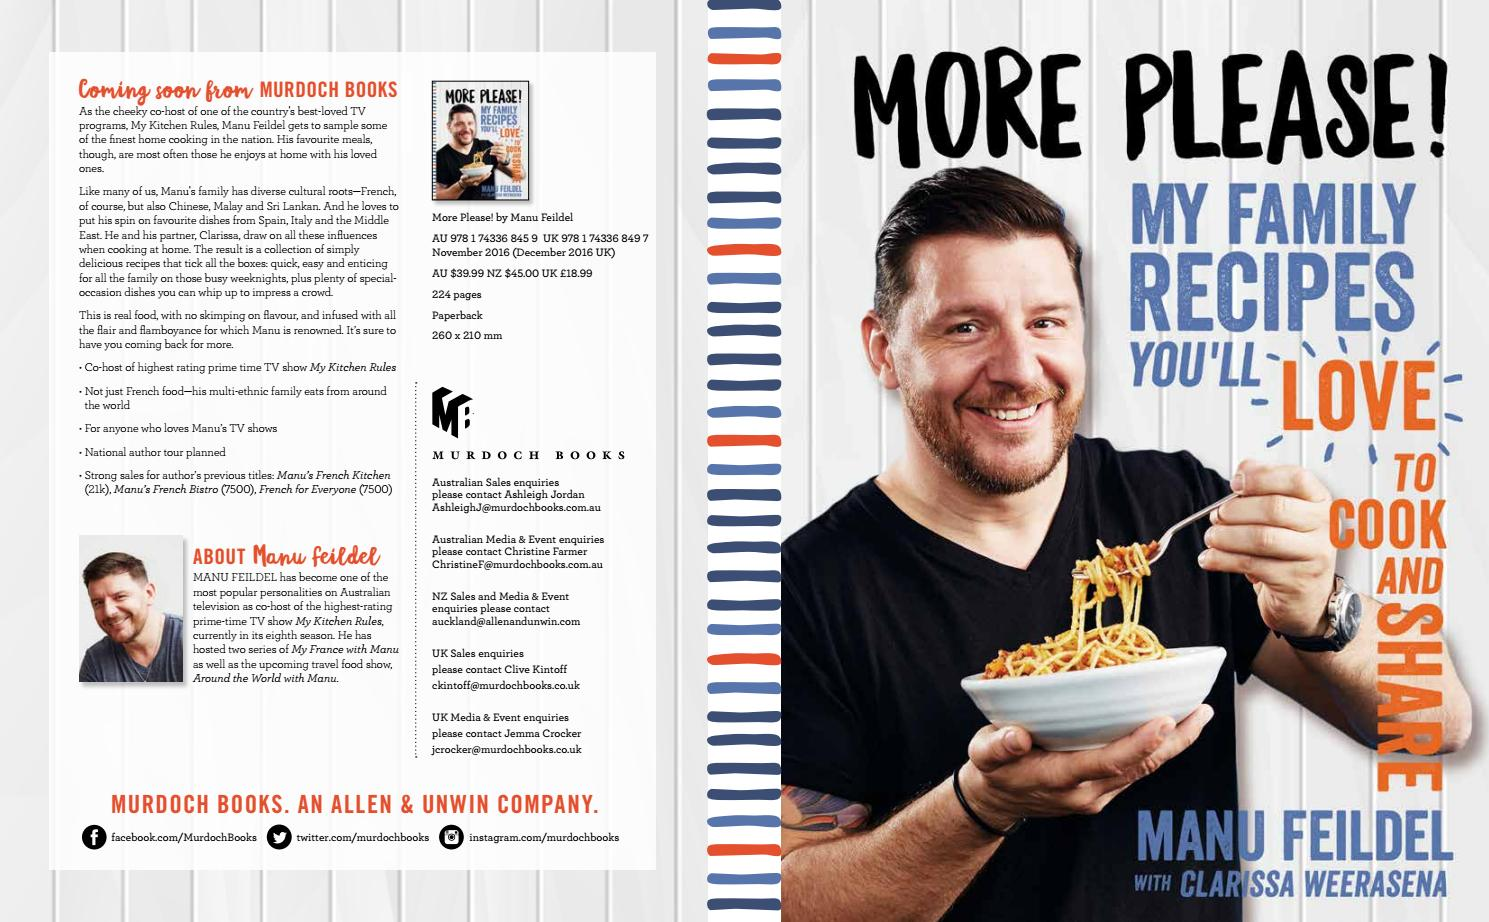 More please! Manu Feildel November 2016 by Murdoch Books - issuu